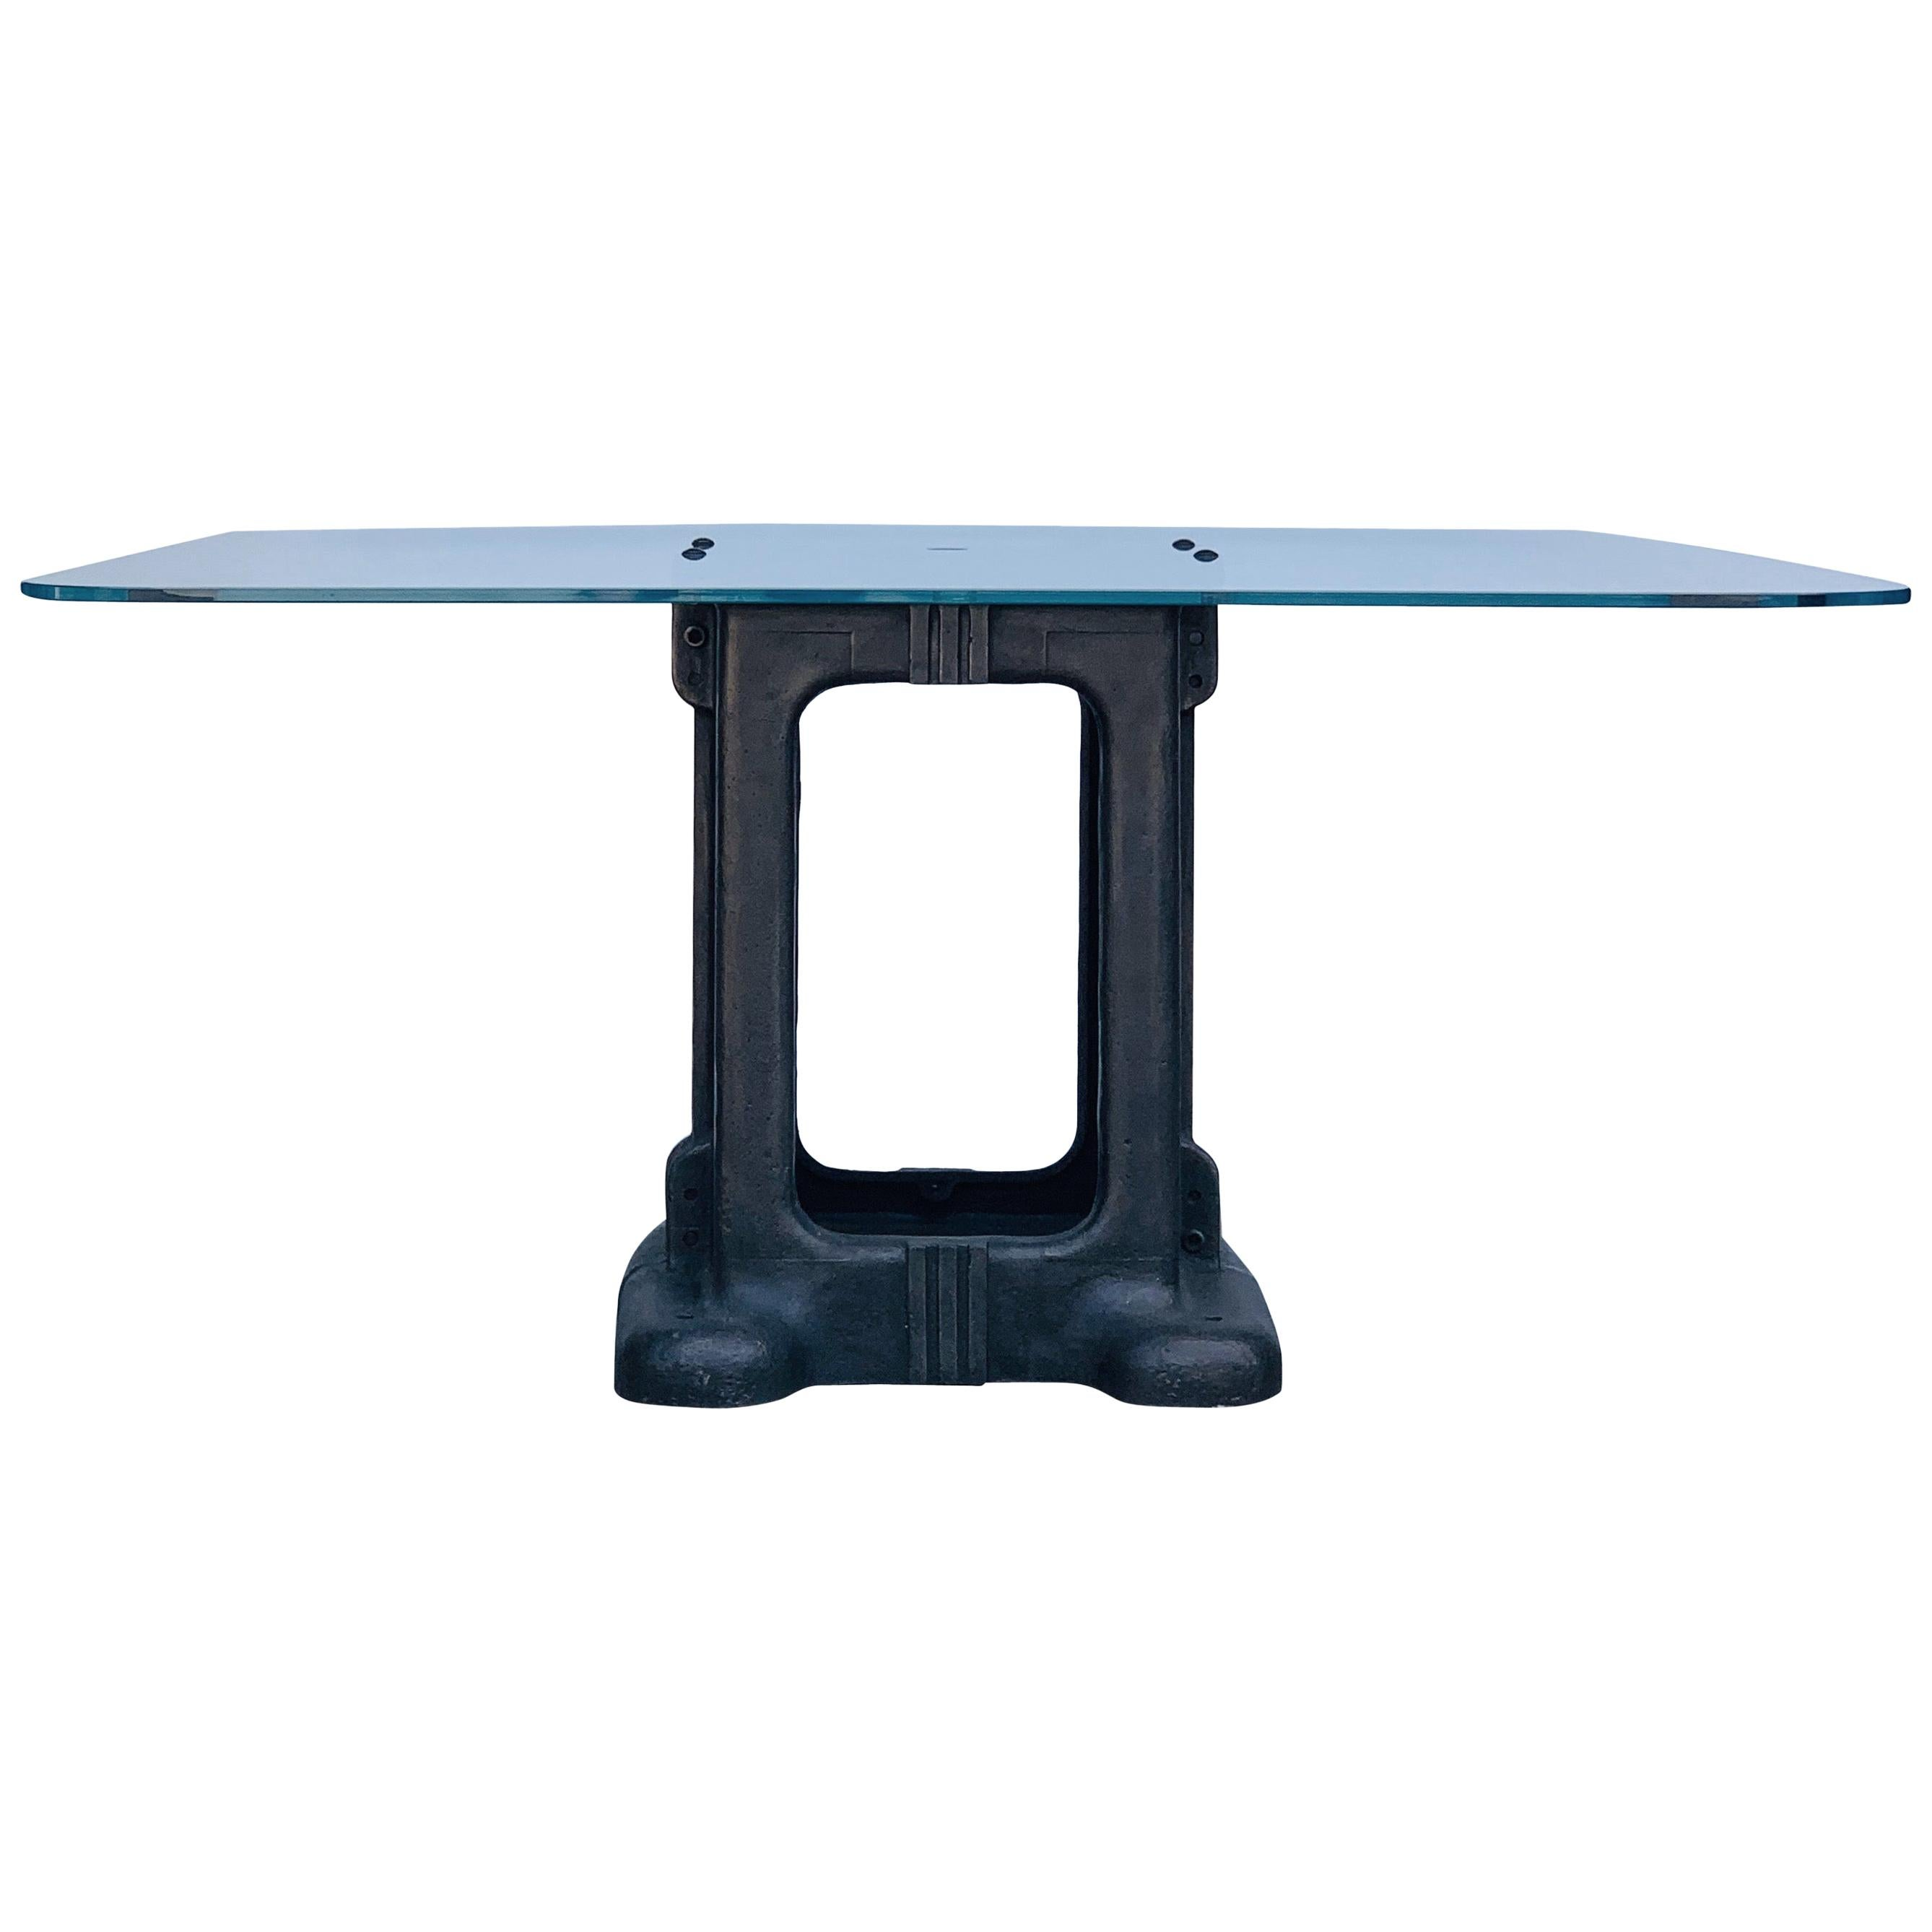 Sculptural Cast Iron Pedestal and Glass Industrial Dining / Work Table